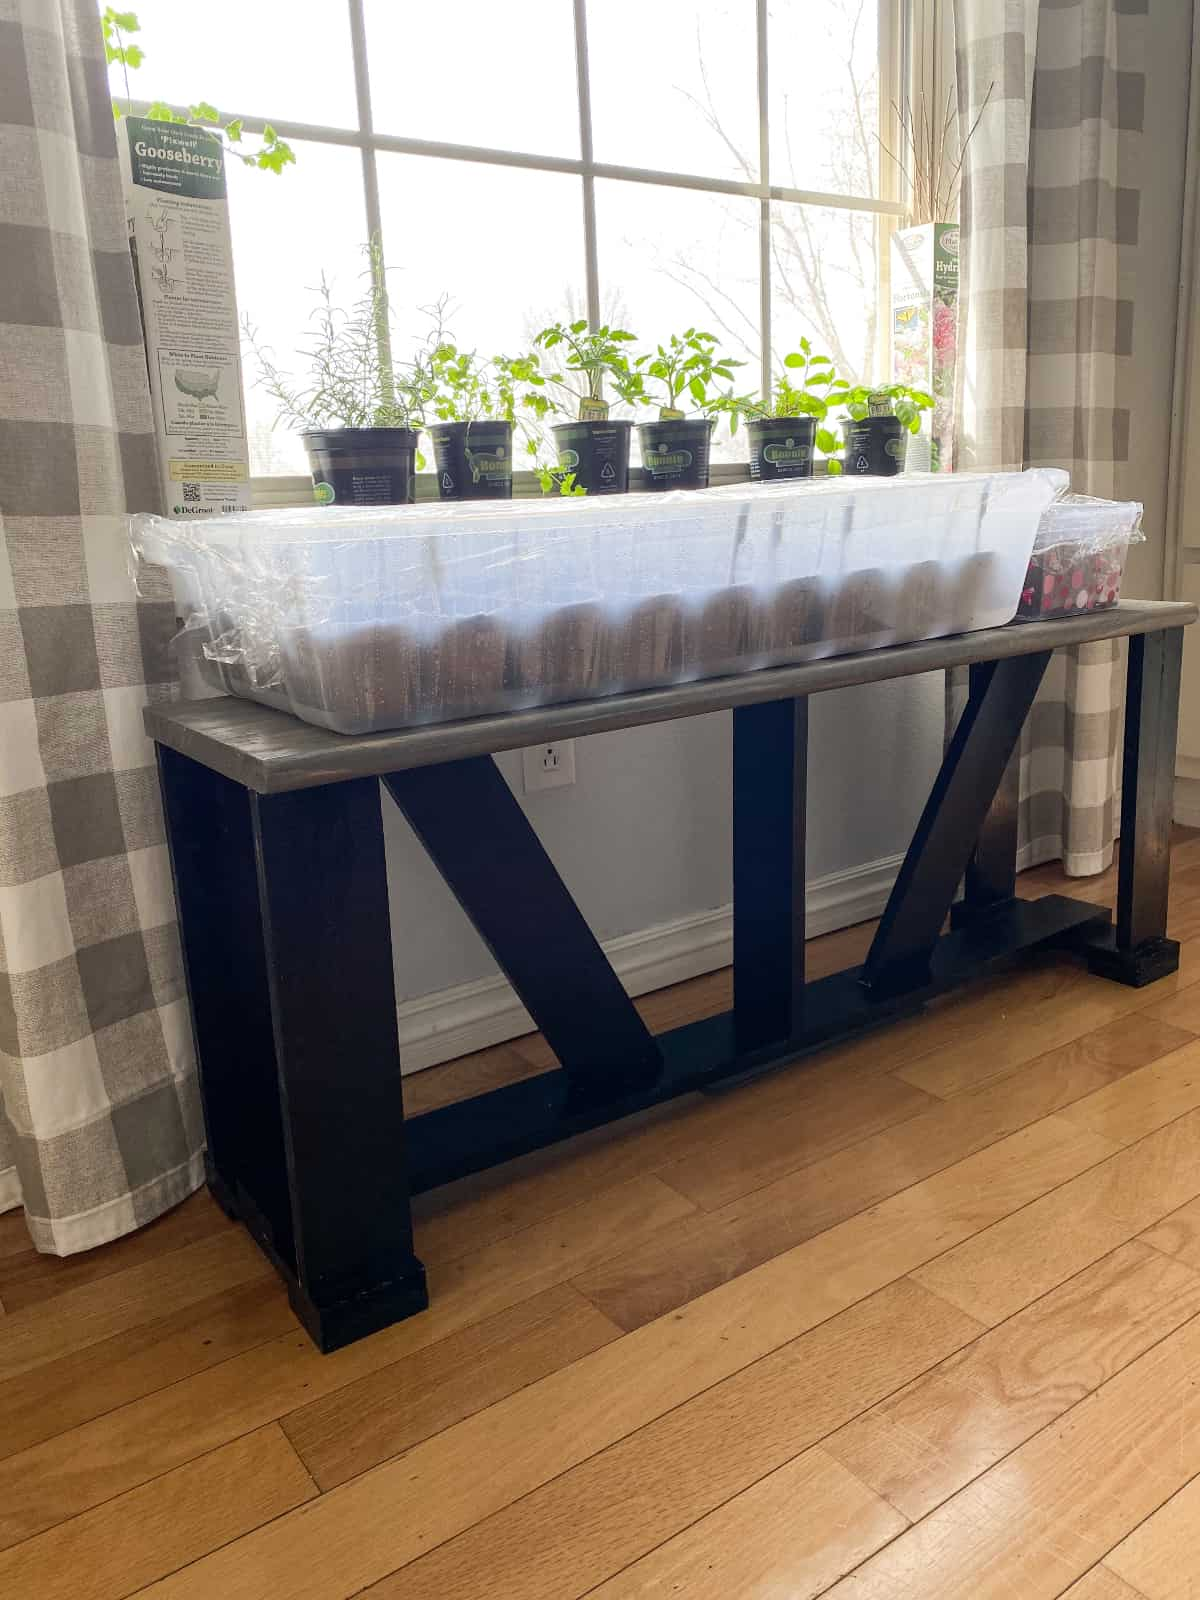 a diy plant bench with seedling on top